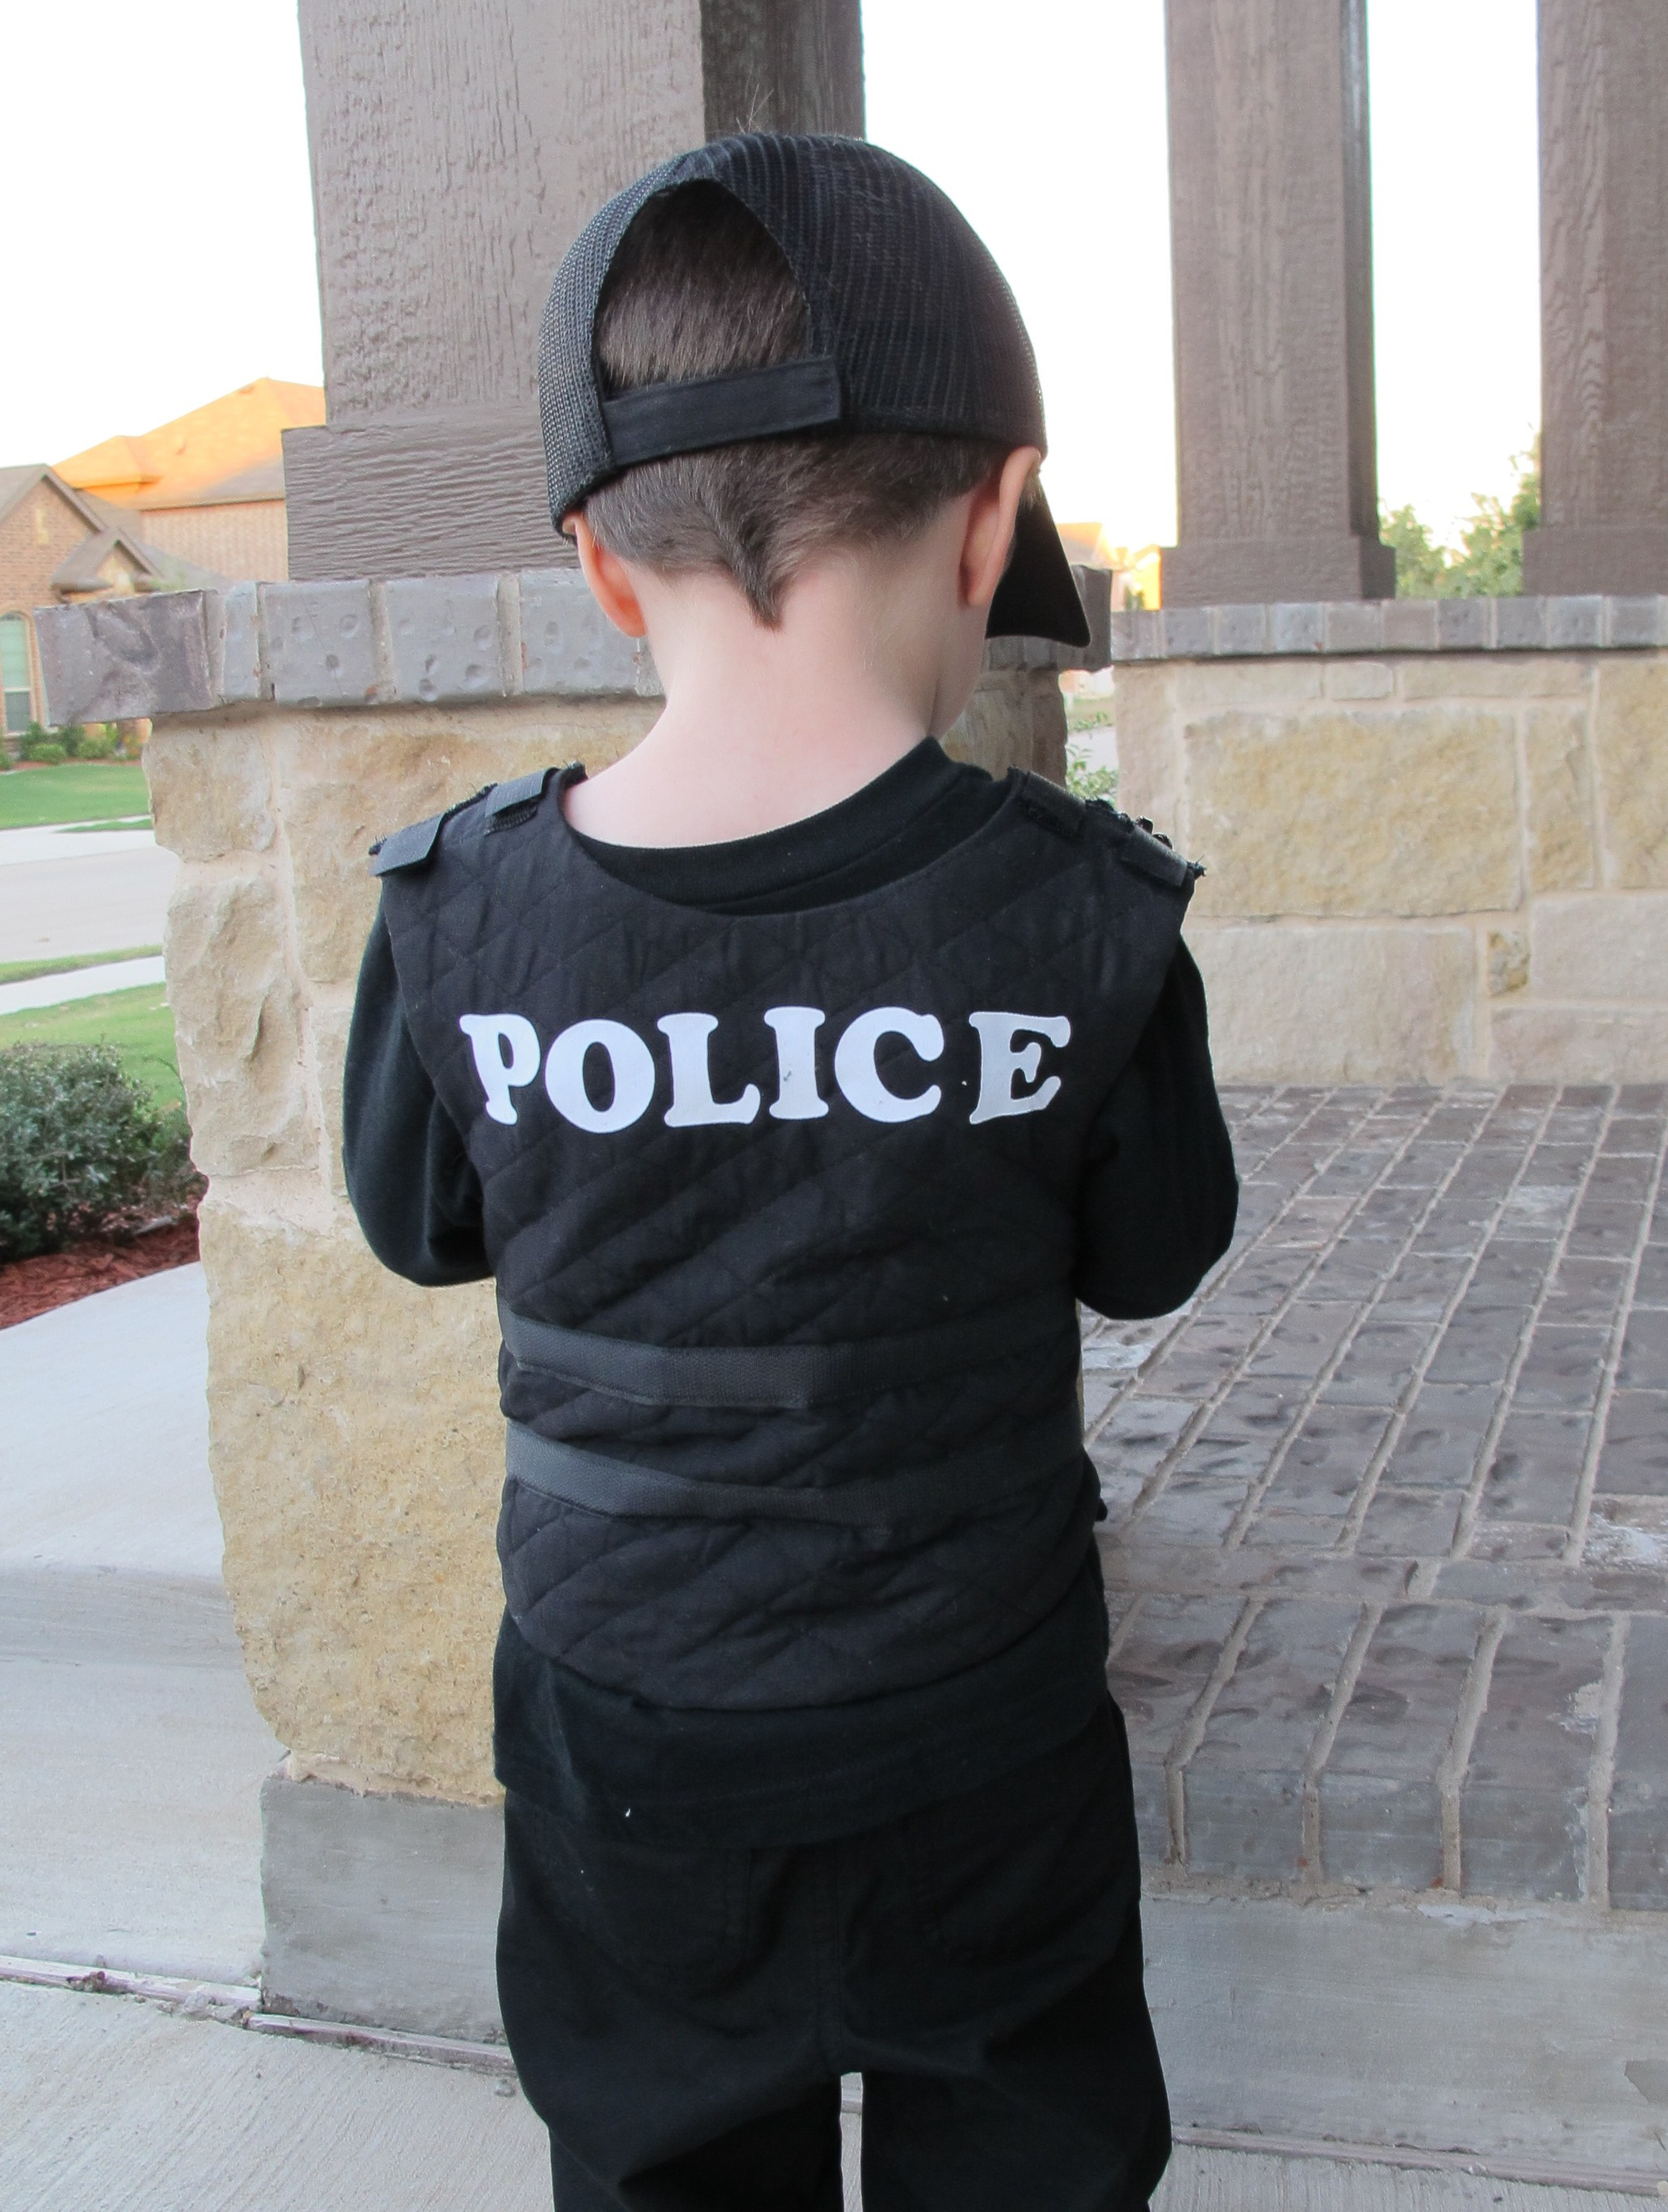 October 2013 operation home she bought a black long sleeved shirt pants and boots then sewed his kevlar vest she added lettering to his vest and hat and added velcro like a real solutioingenieria Image collections